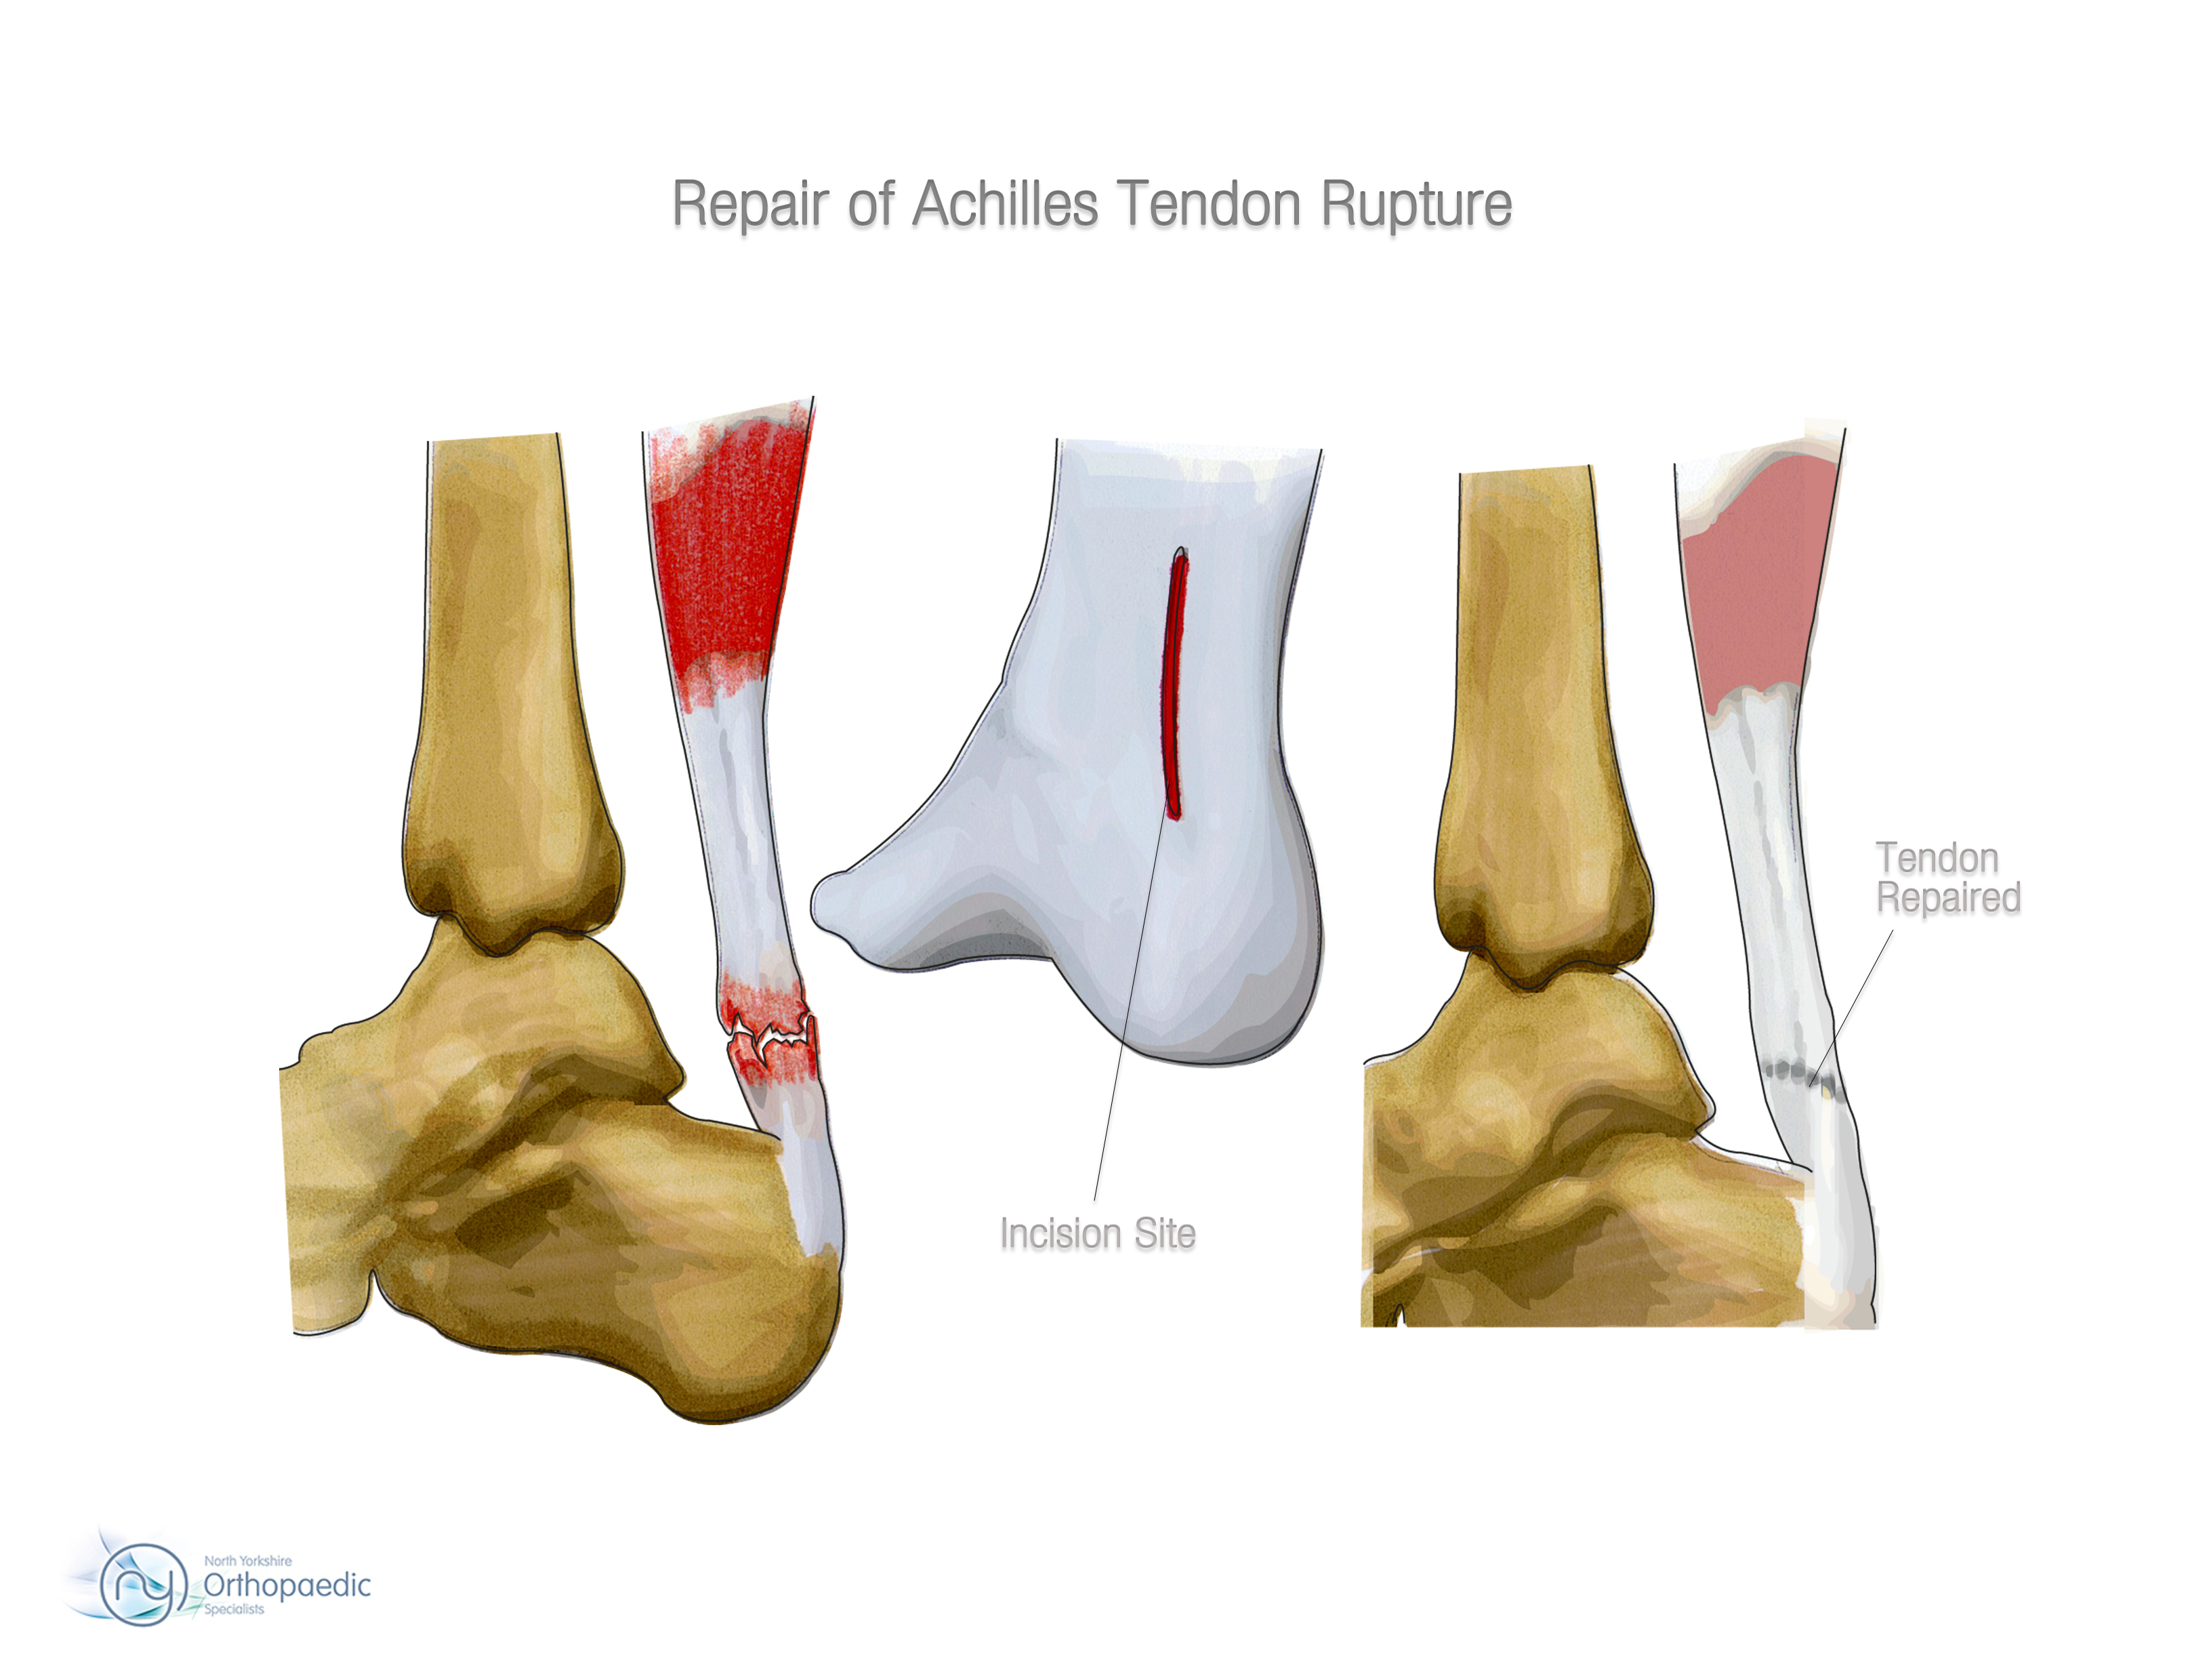 Achilles tendon rupture physical therapy - Post Surgery Rehabilitation